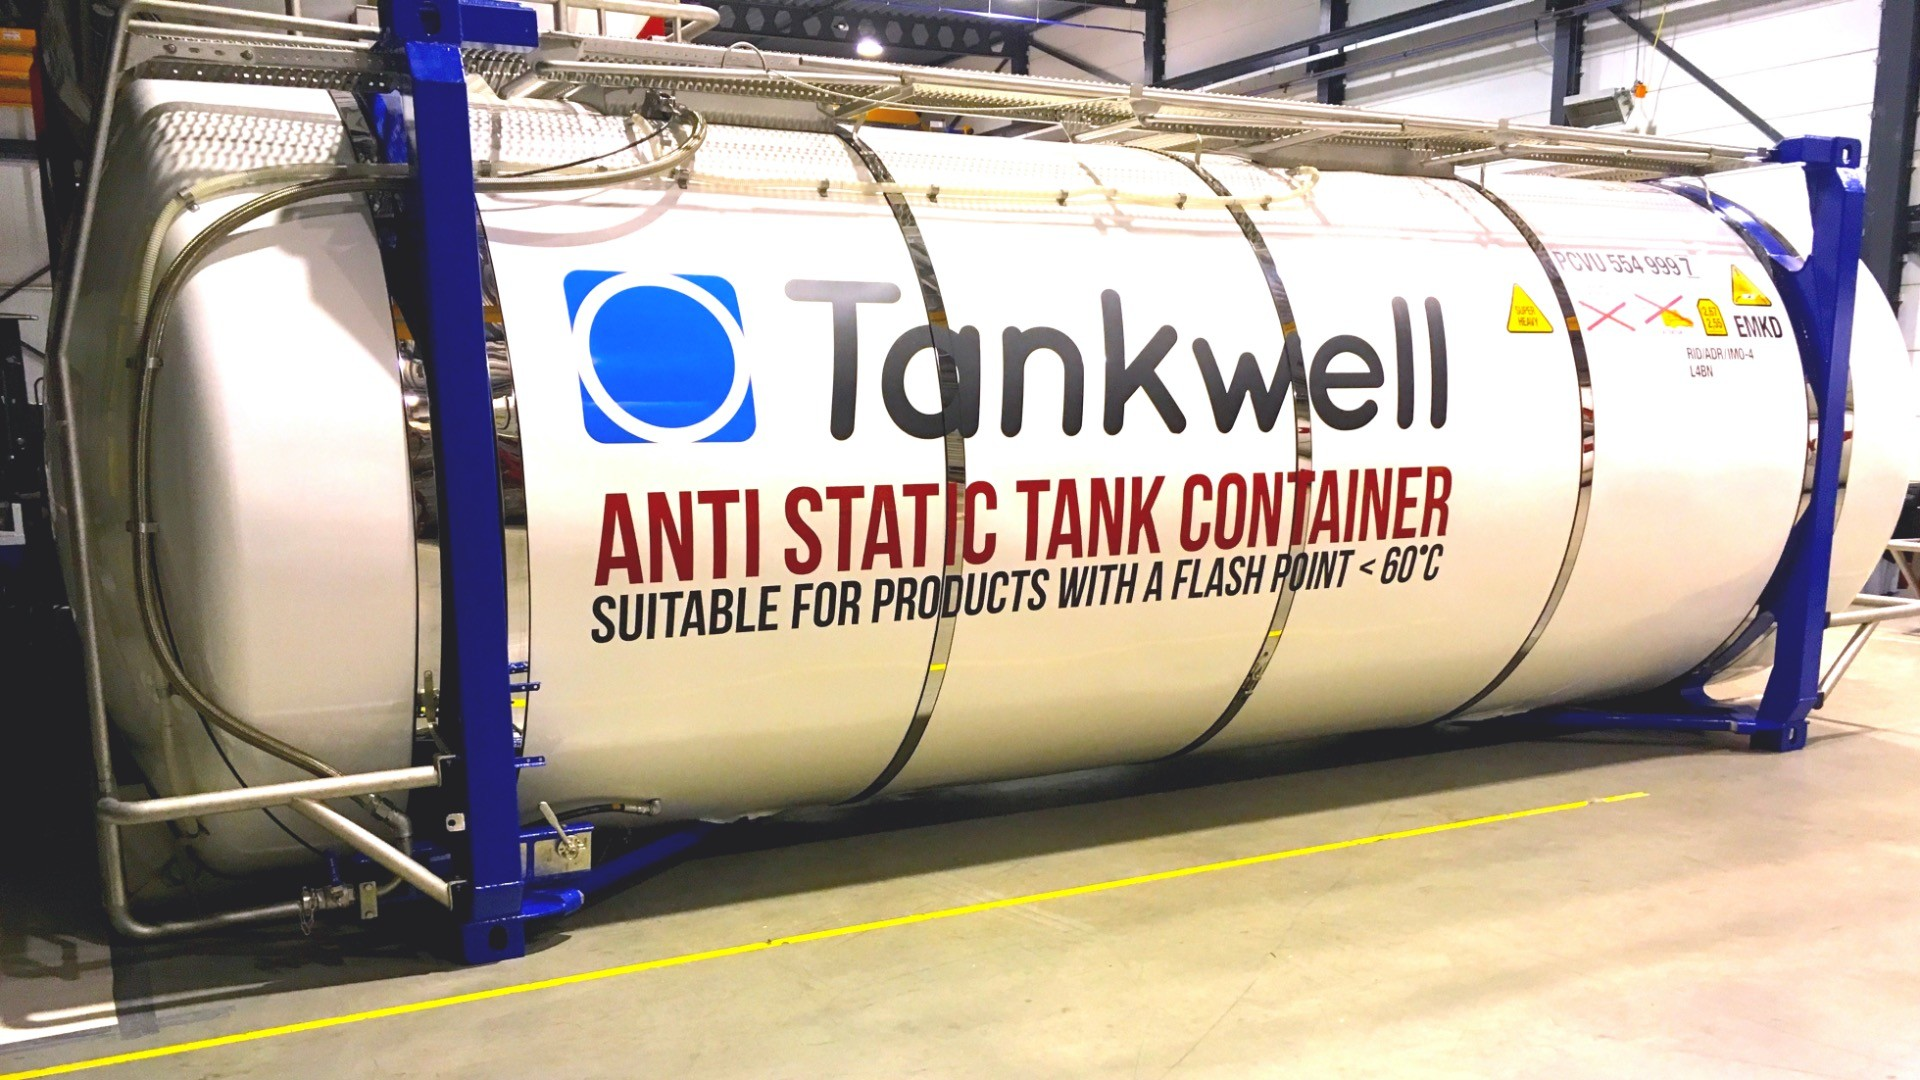 Tankwell introduces anti-static tank container